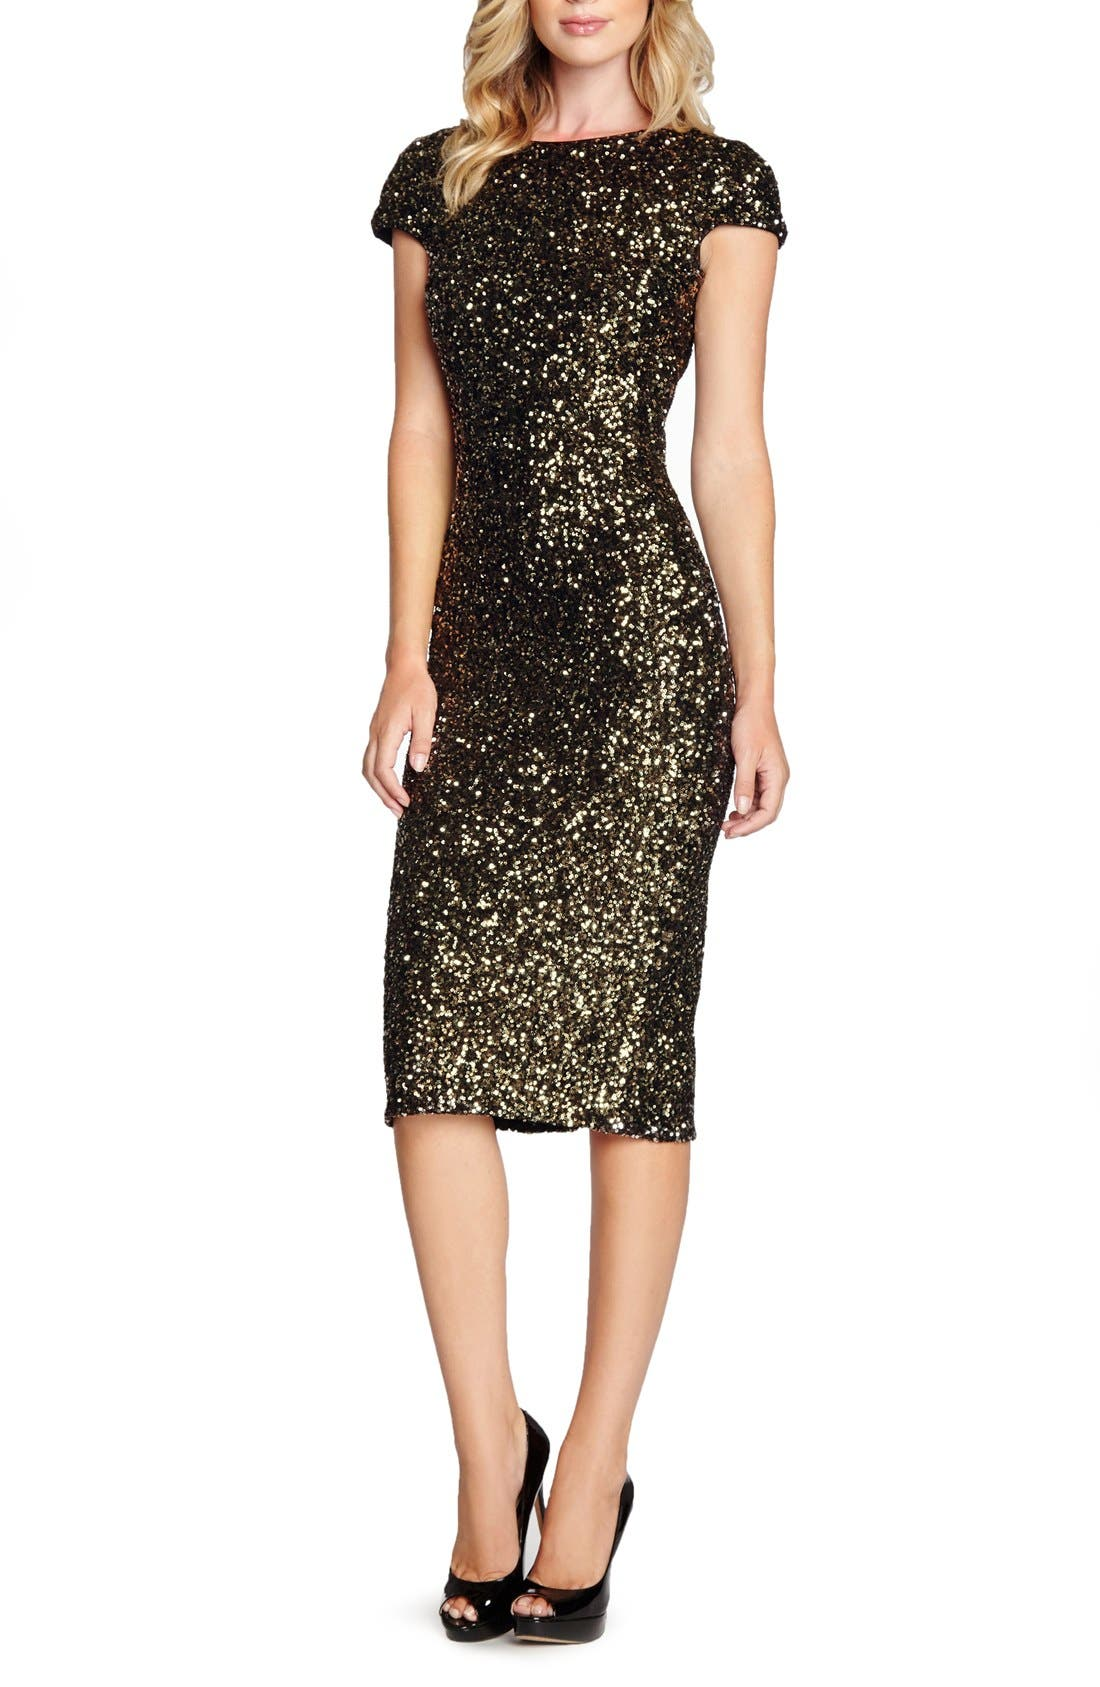 Alternate Image 1 Selected - Dress the Population 'Marcella' Open Back Sequin Body-Con Dress